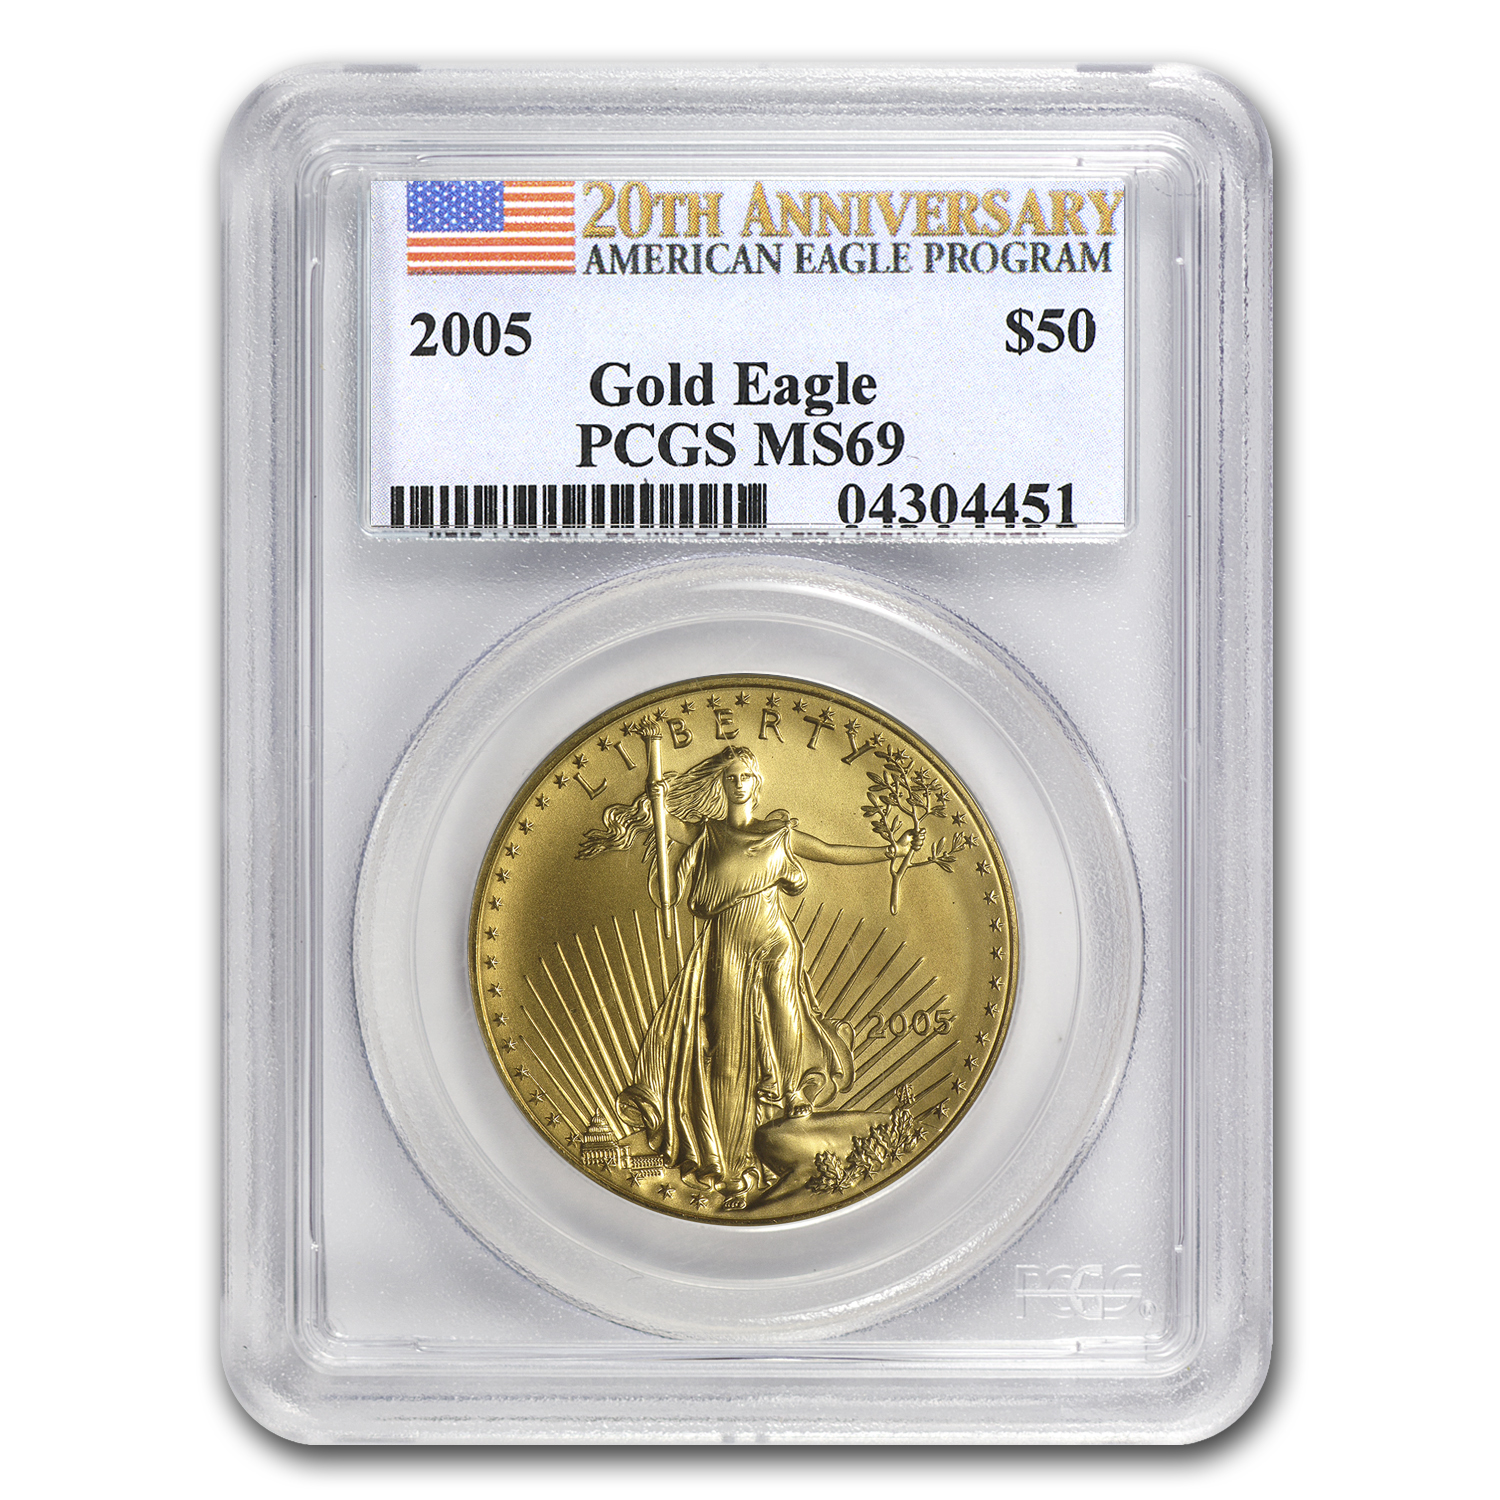 2005 1 oz Gold American Eagle MS-69 PCGS (20th Anniv)